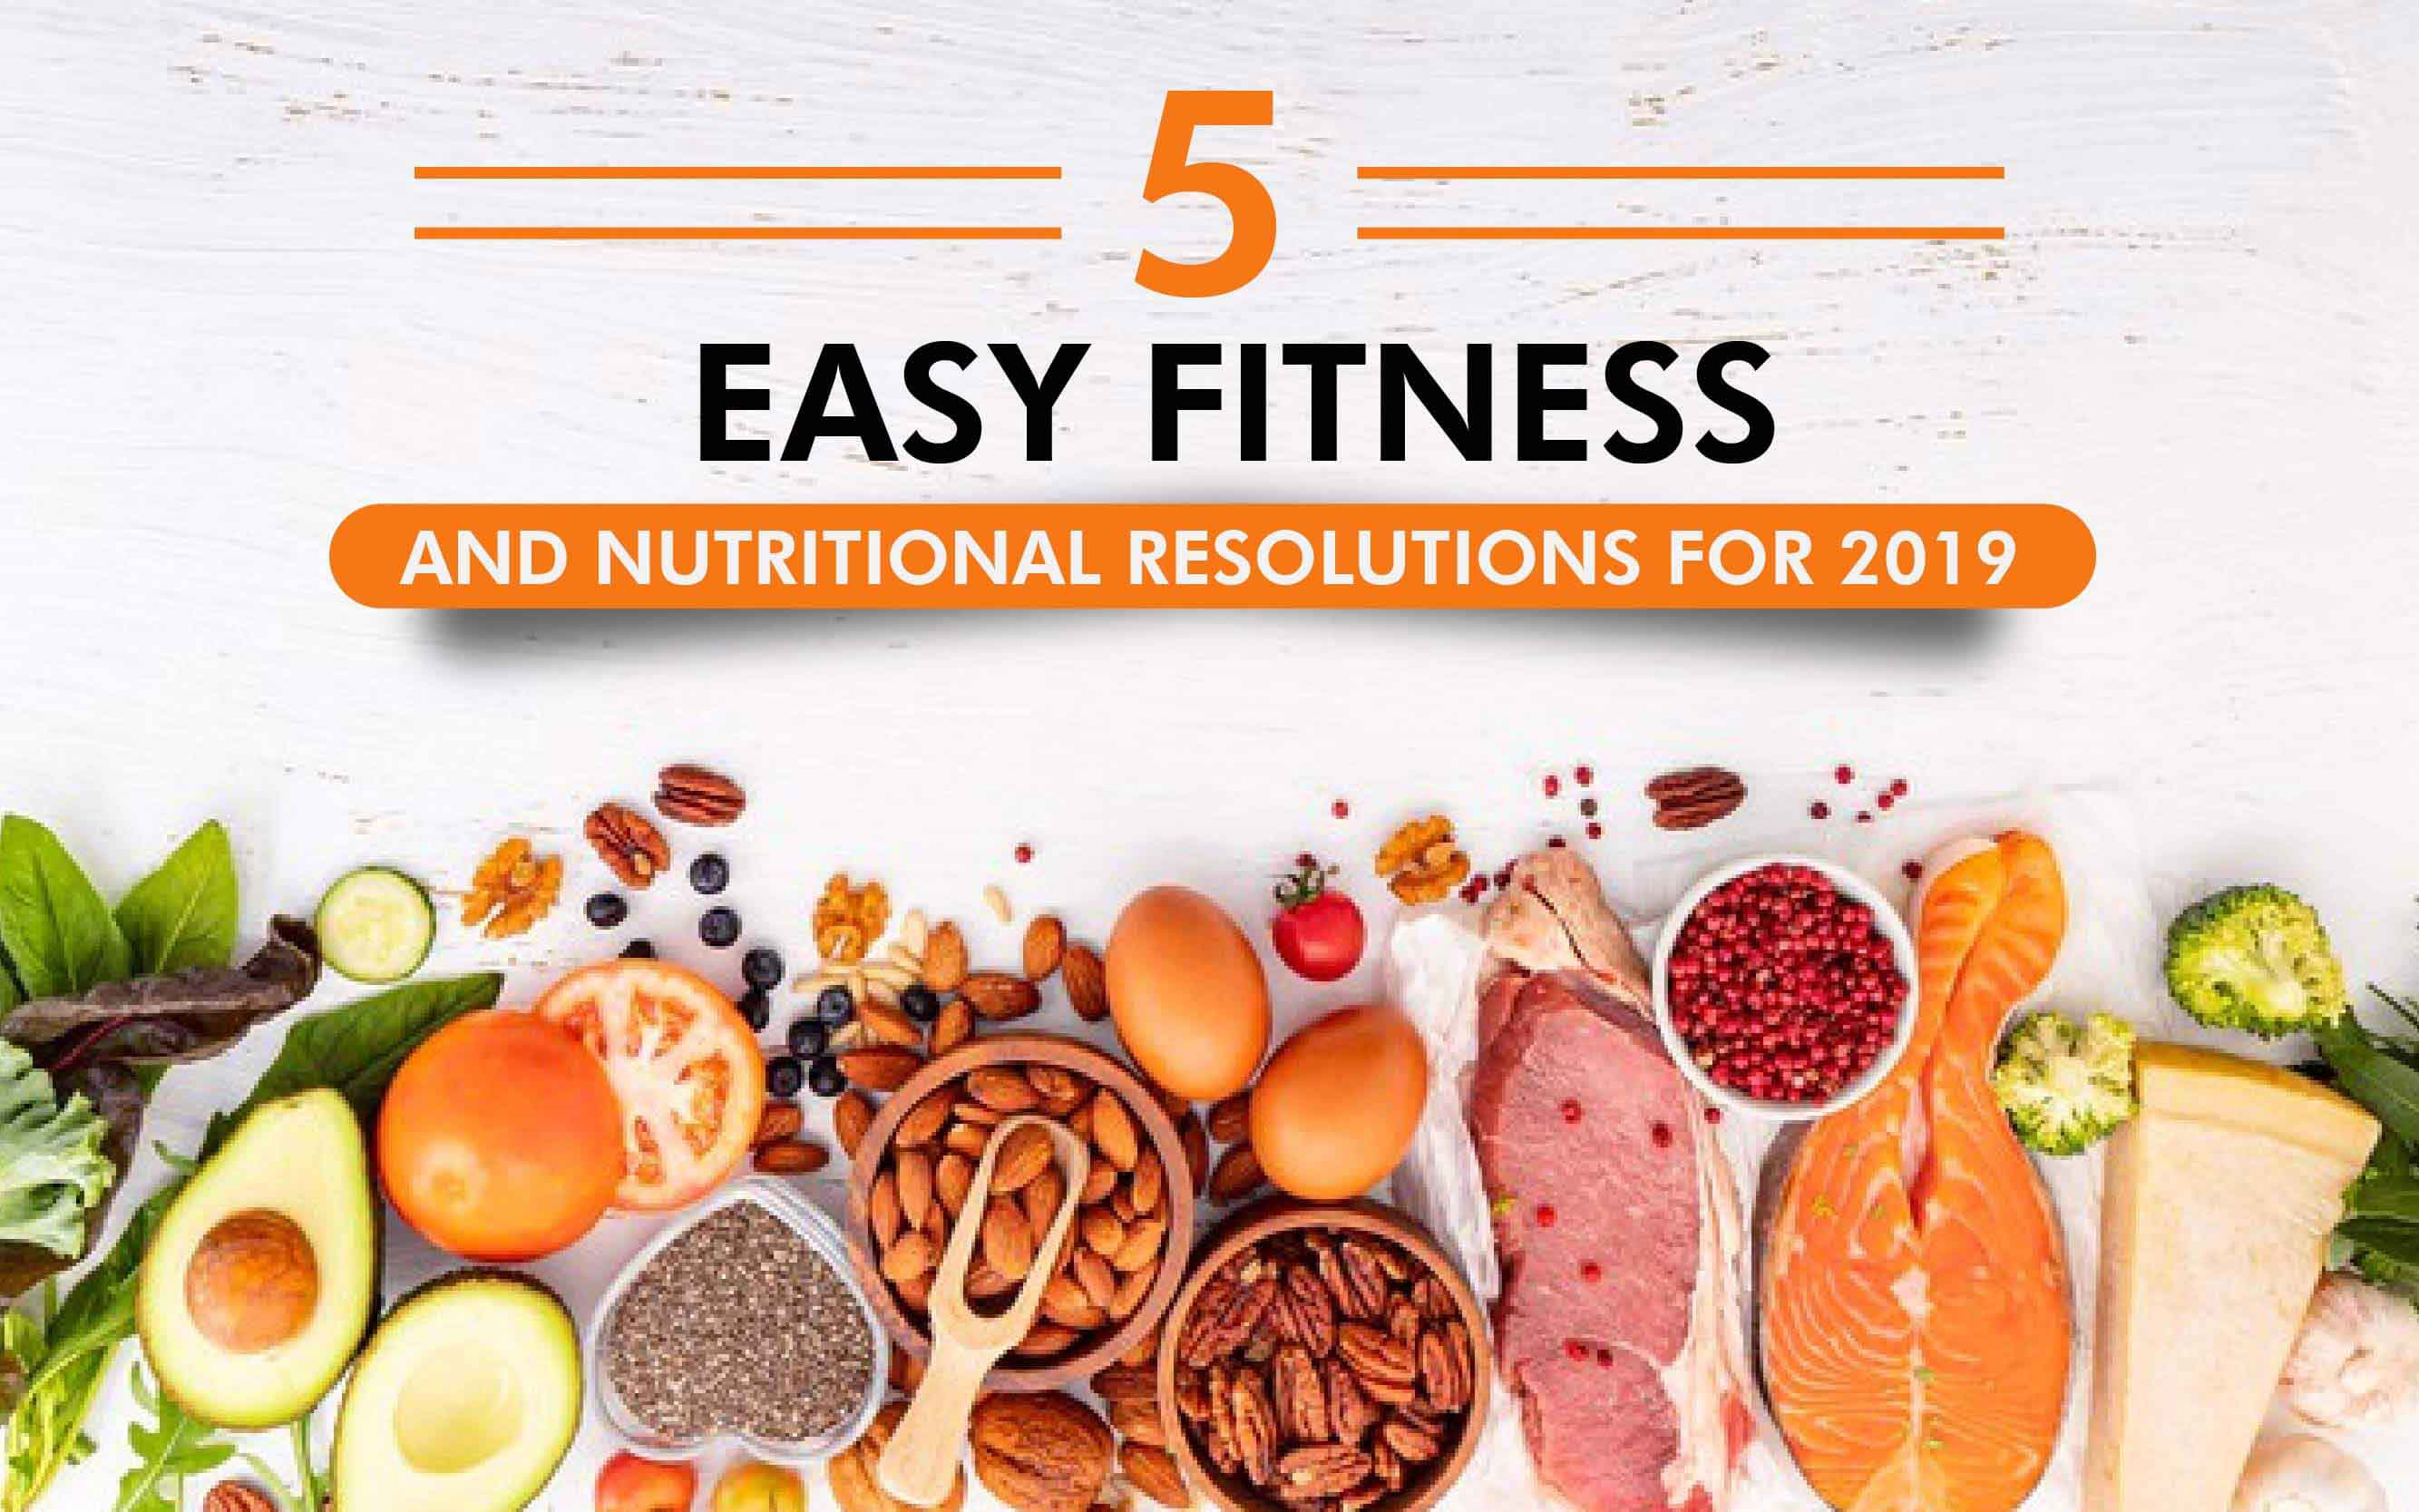 5 Easy Fitness and Nutritional Resolutions